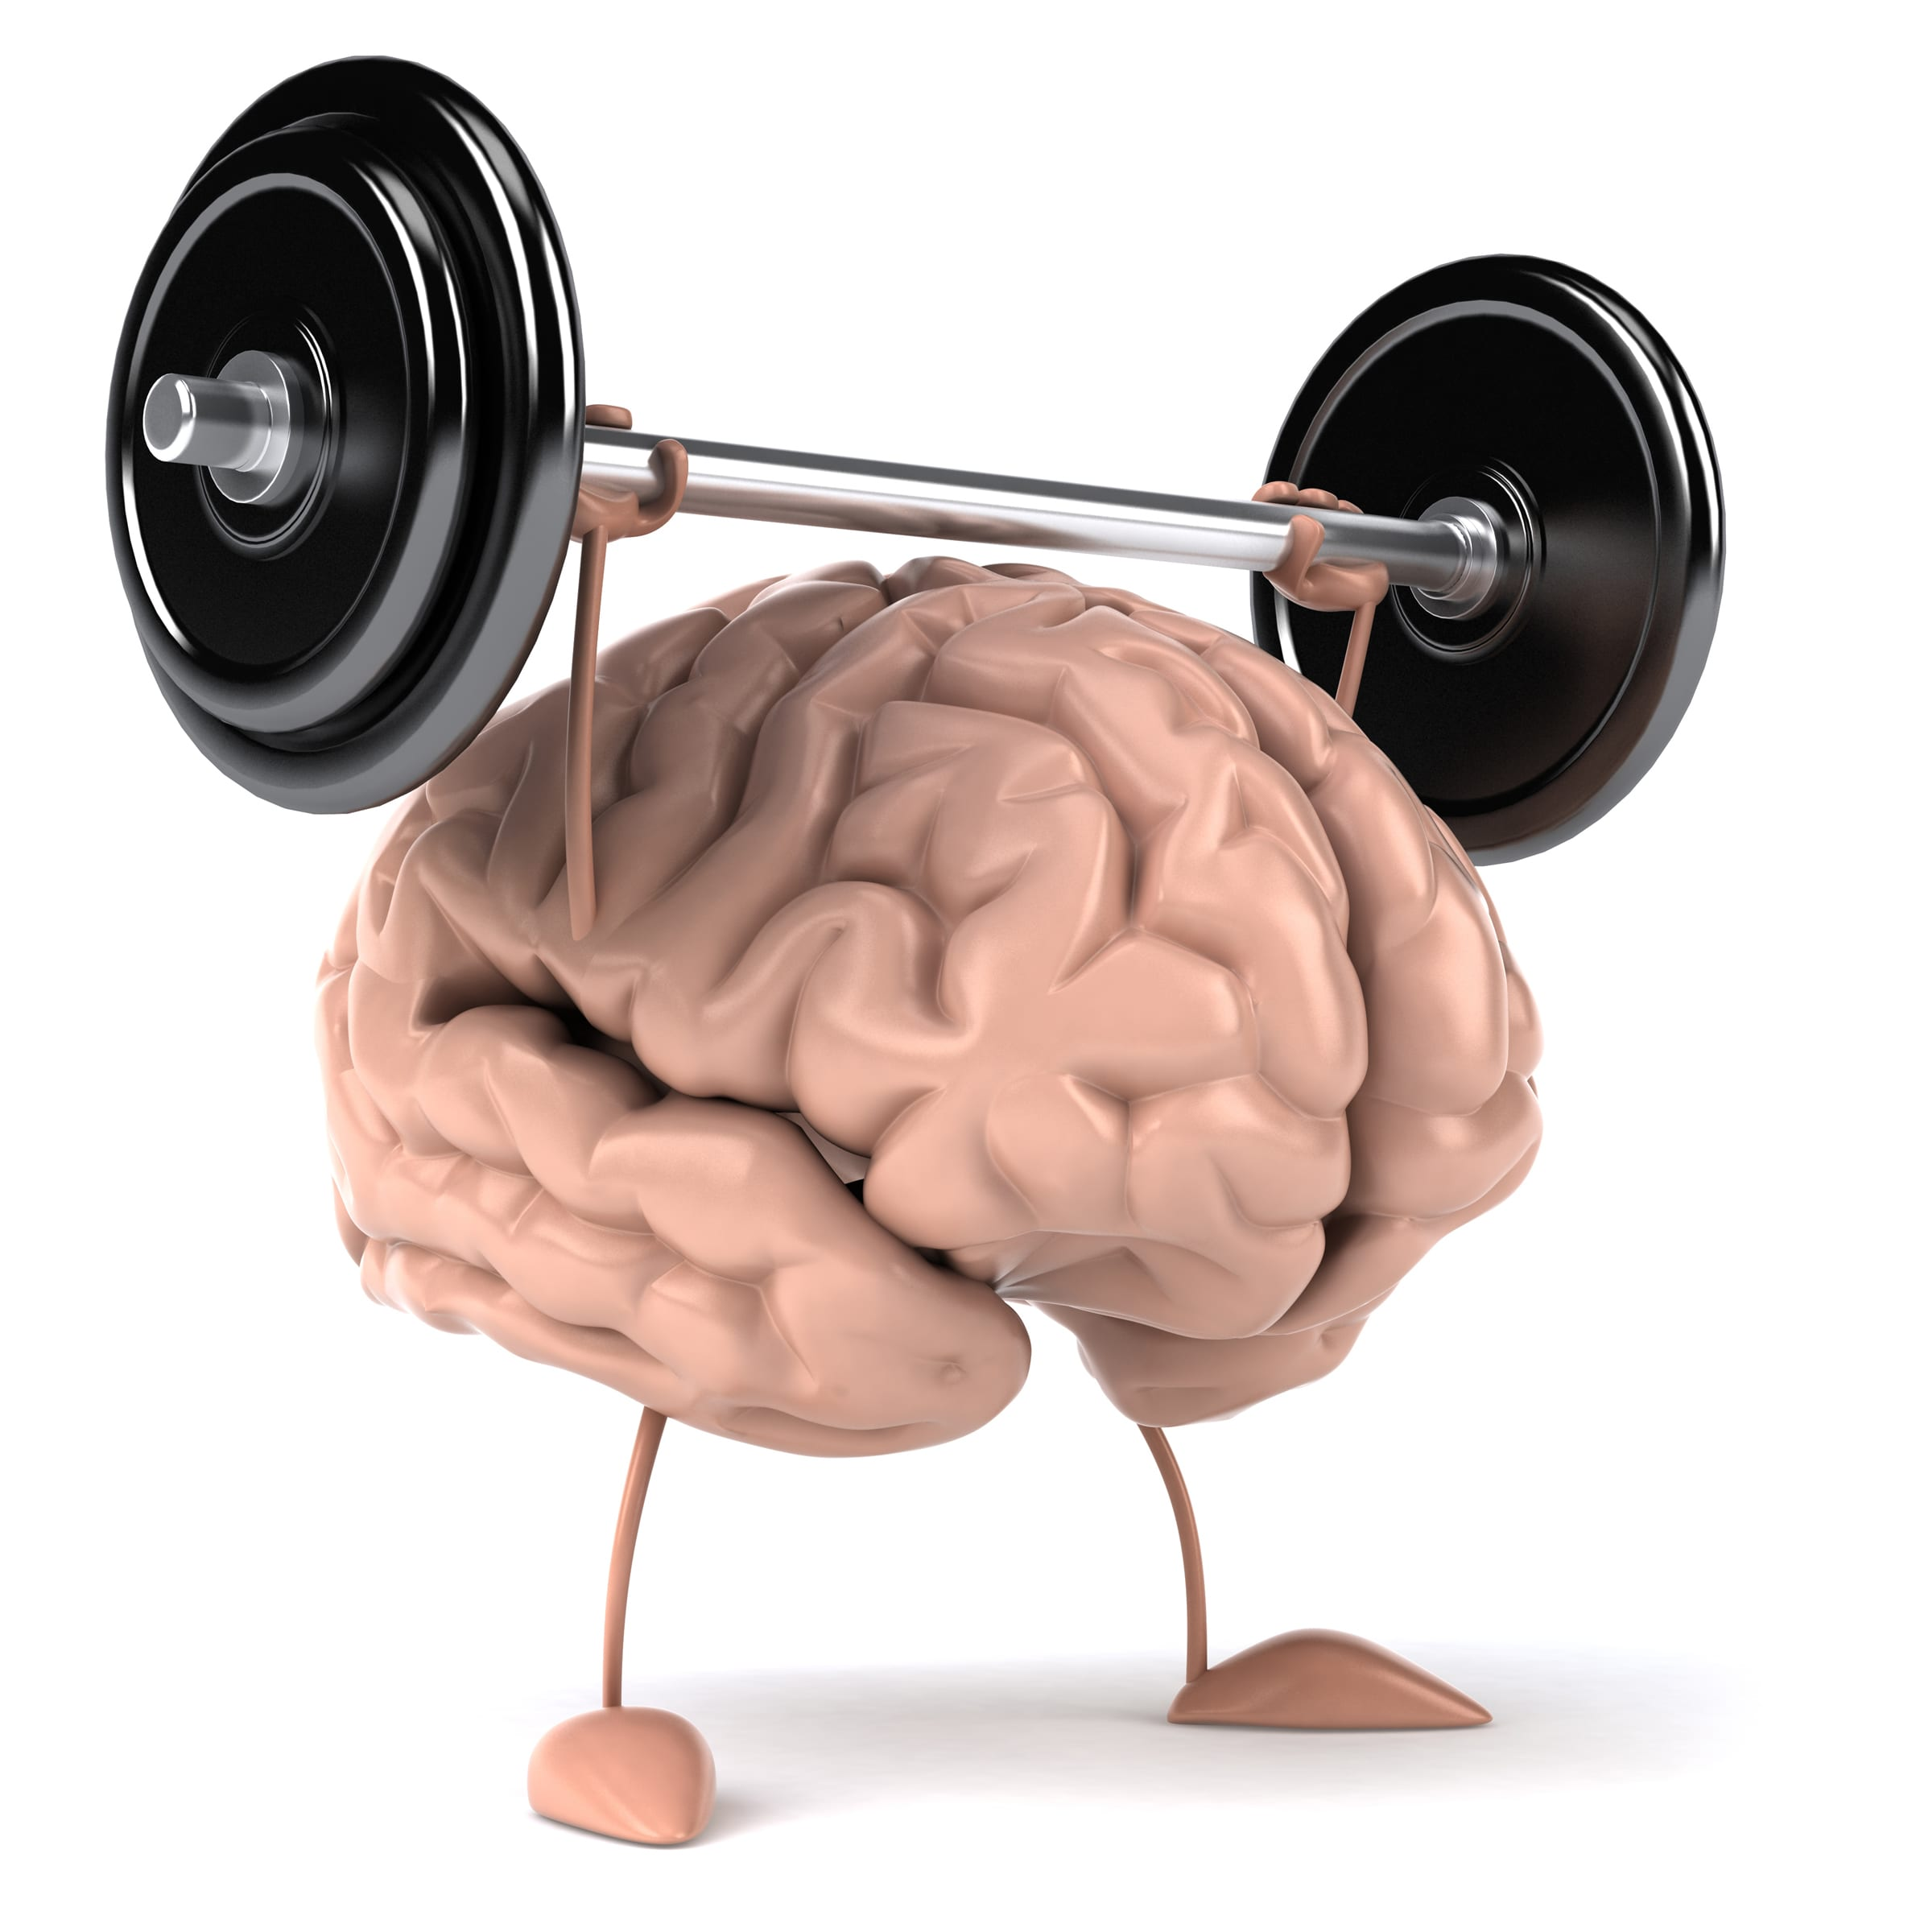 Greater Strength, Bigger Muscle = Bigger Brain?